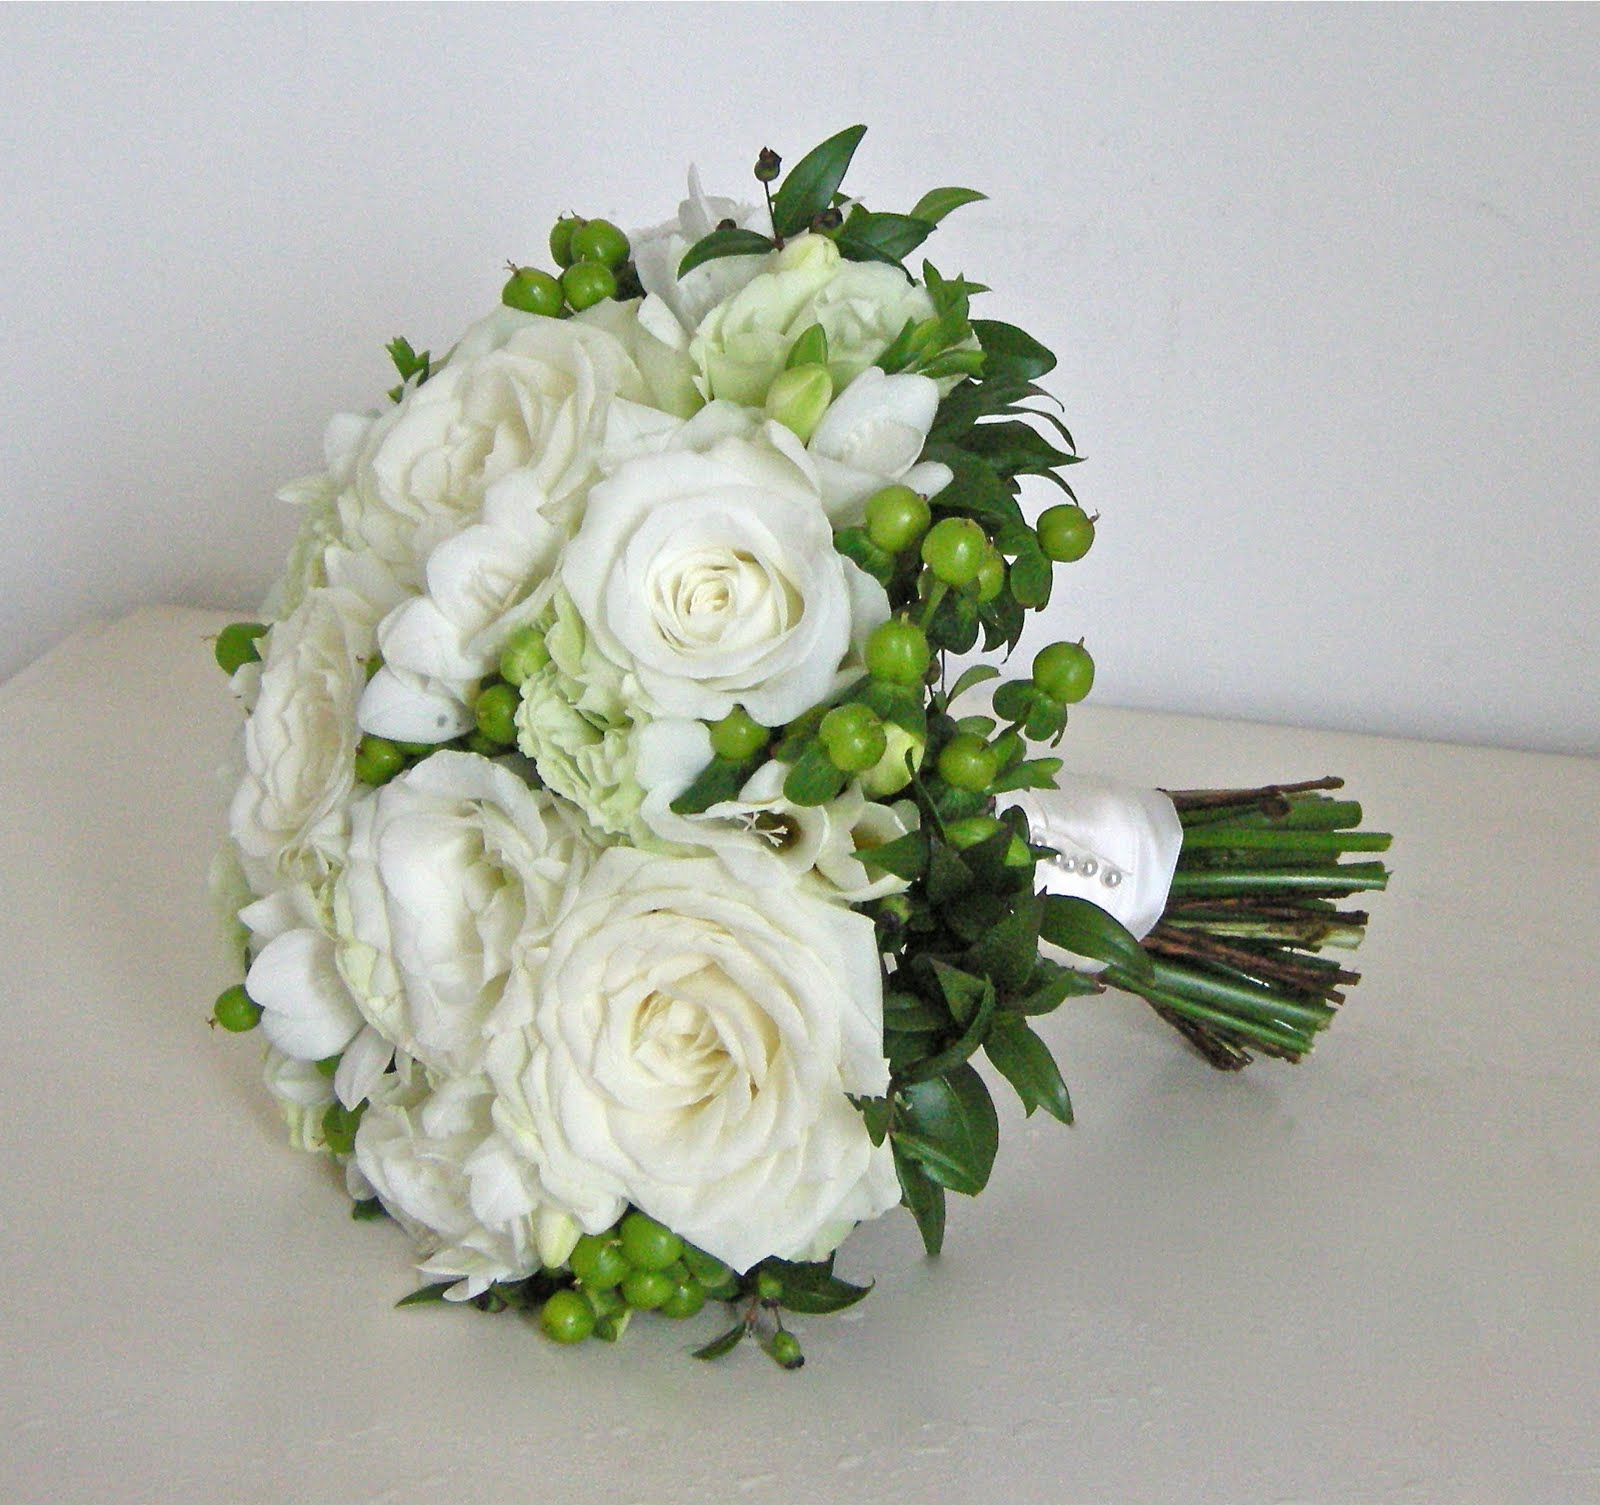 Wedding Flowers Blog Holly 39 S Classic Green And White Wedding Flowers